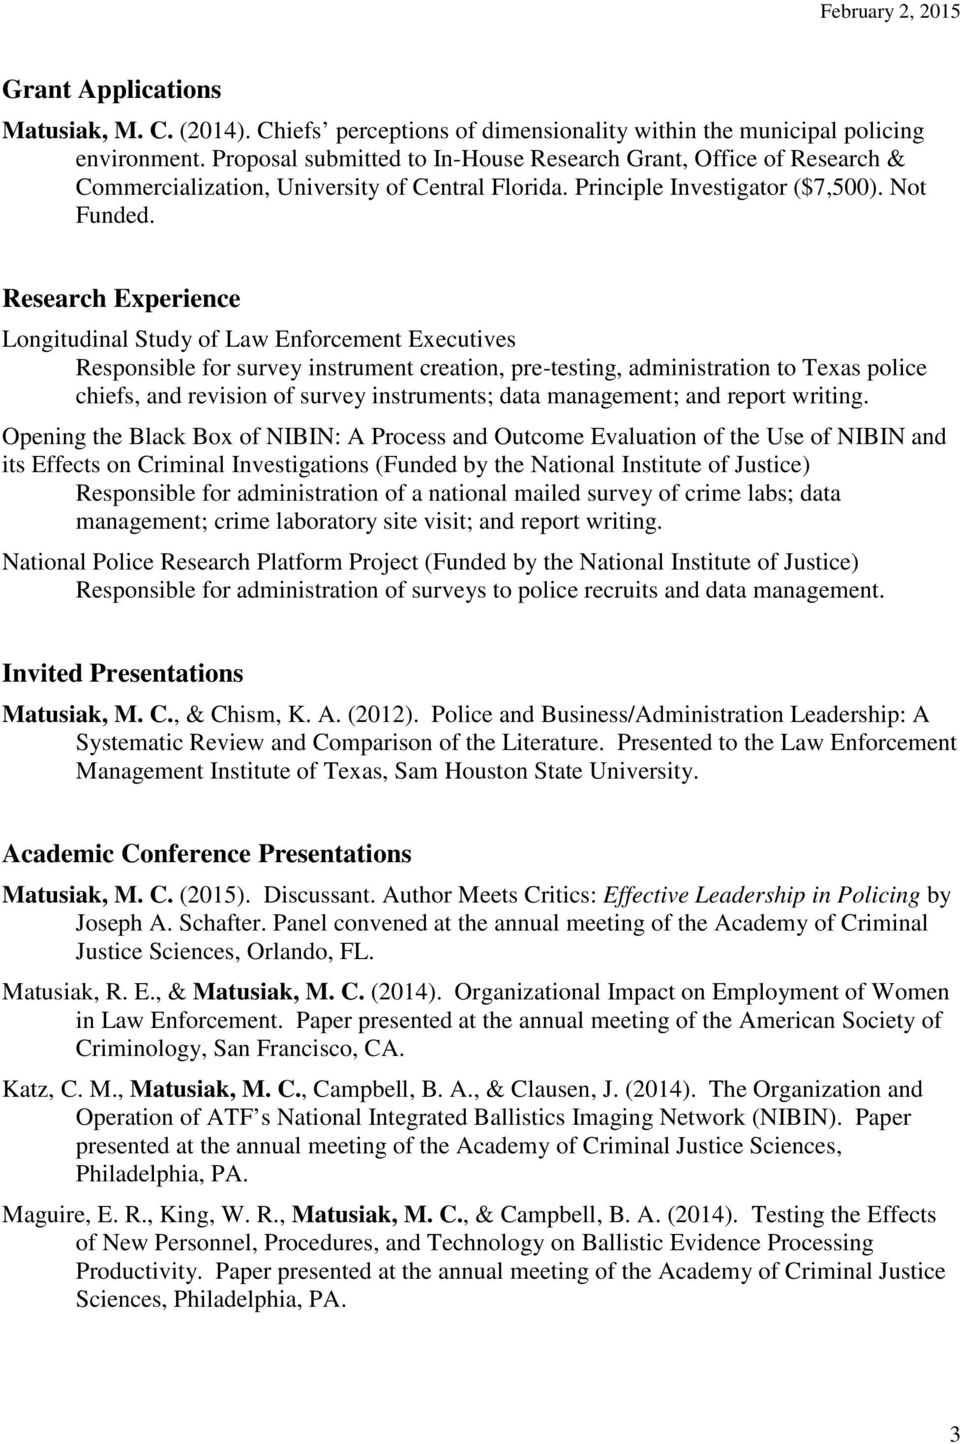 Research Experience Longitudinal Study of Law Enforcement Executives Responsible for survey instrument creation, pre-testing, administration to Texas police chiefs, and revision of survey